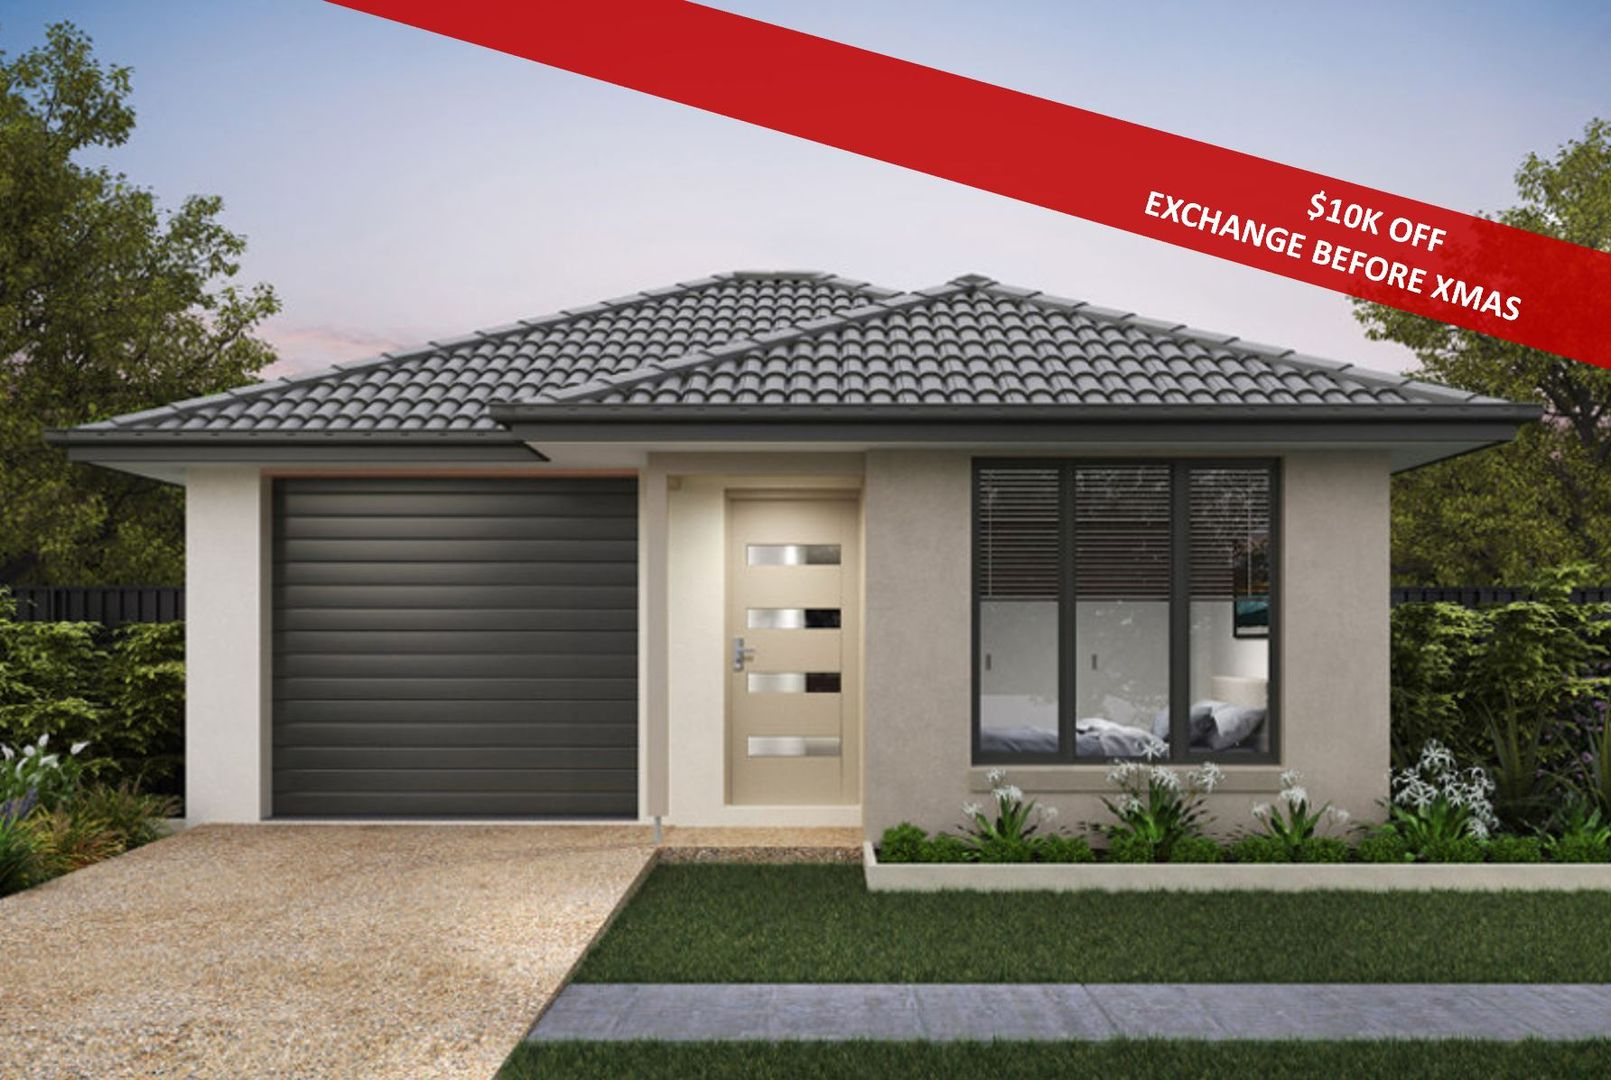 Lot 12 Bullard Street, Riverstone NSW 2765, Image 0